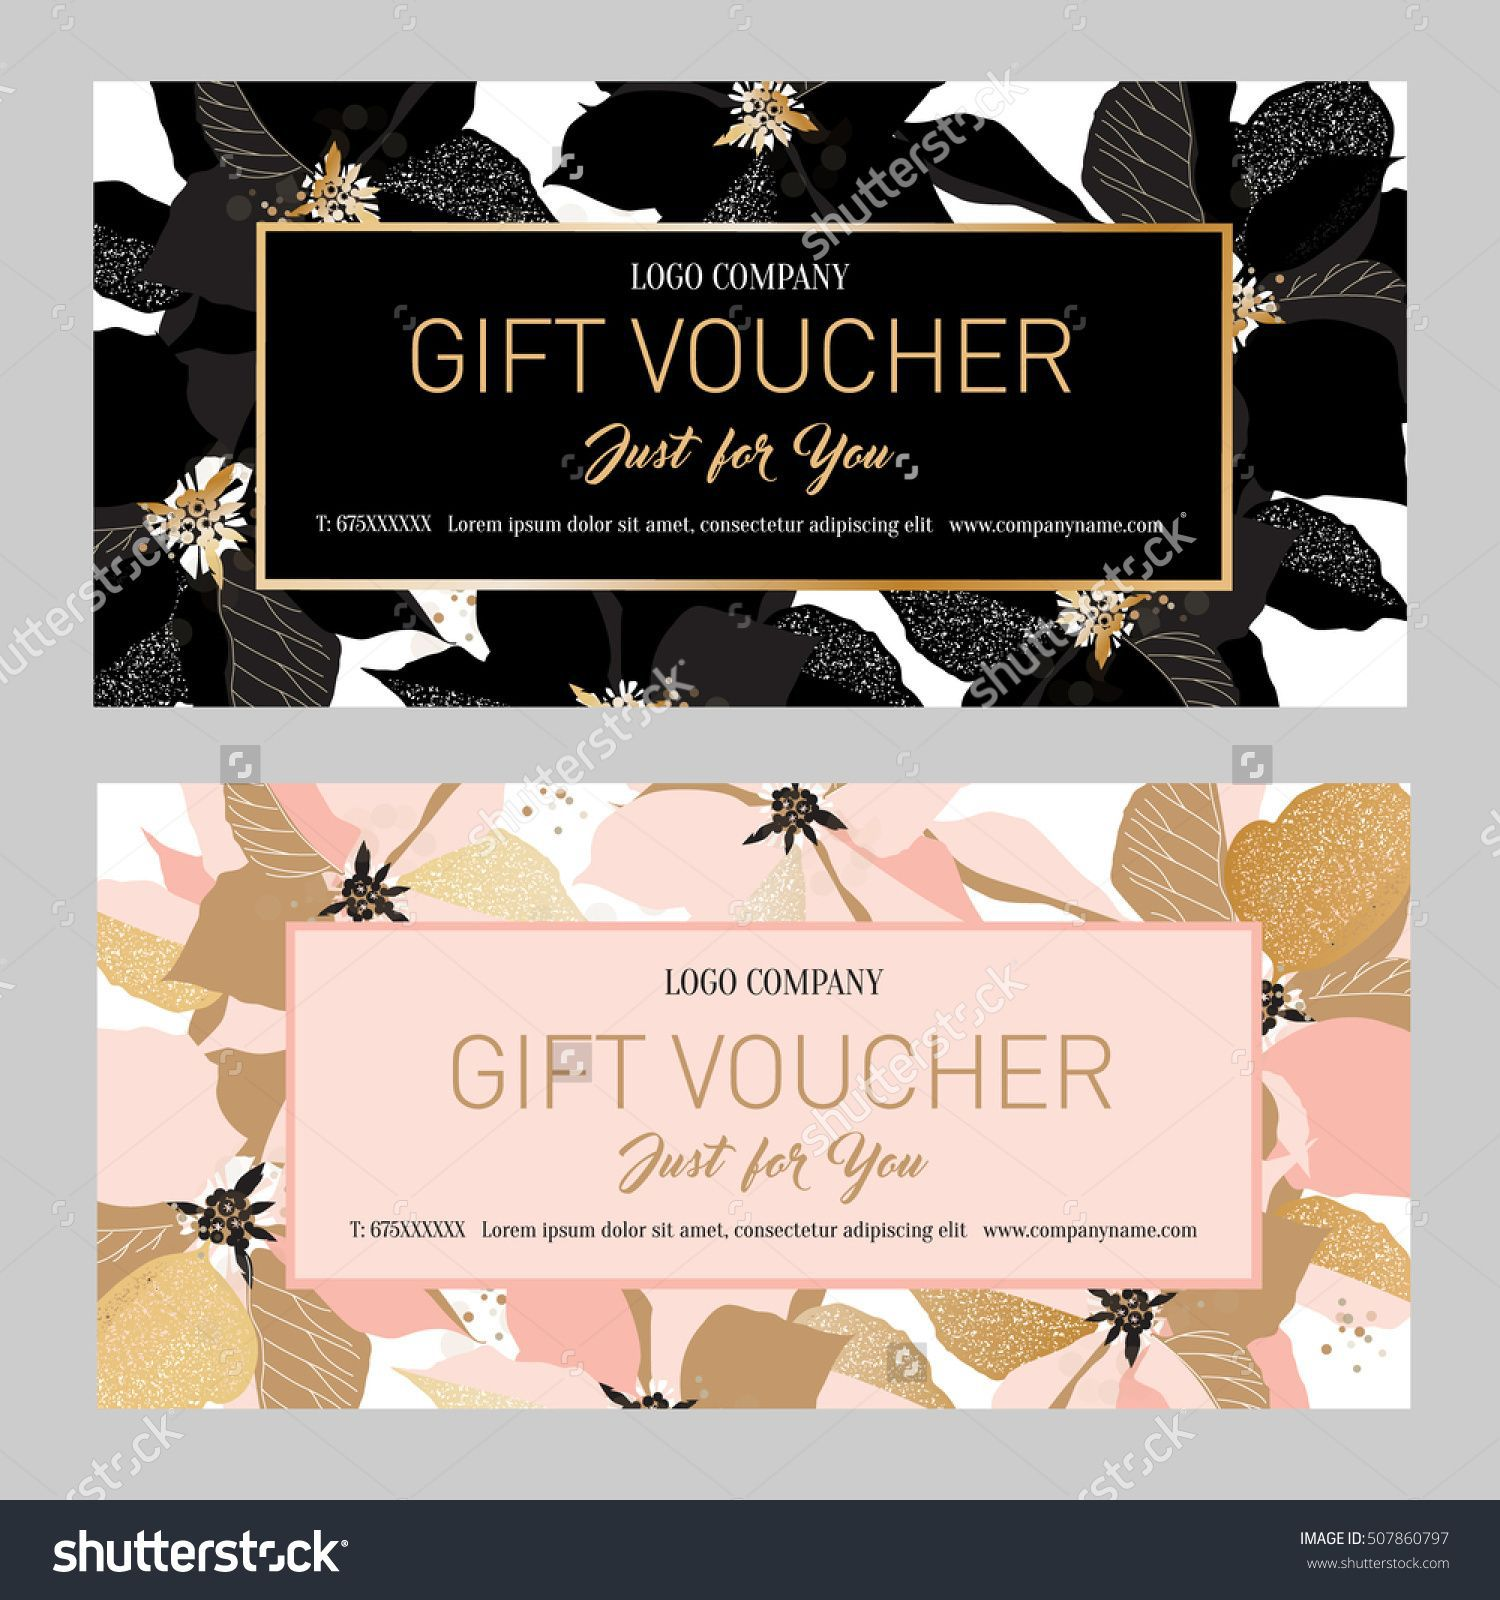 000 Fearsome Salon Gift Certificate Template Sample Full